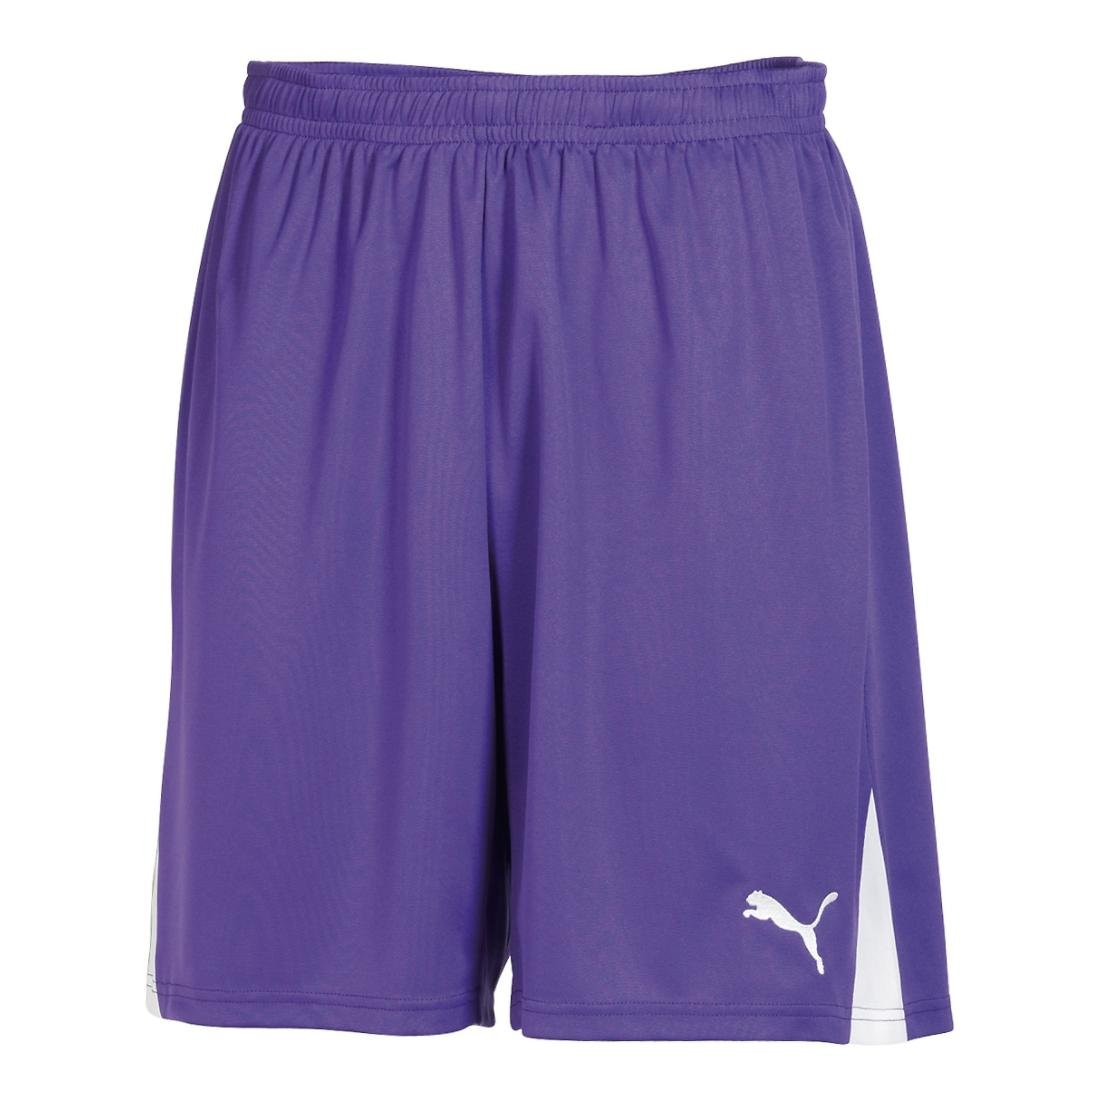 Puma Men's Team Shorts without Inner Slip, Youth Small, Team Violet-Weiß